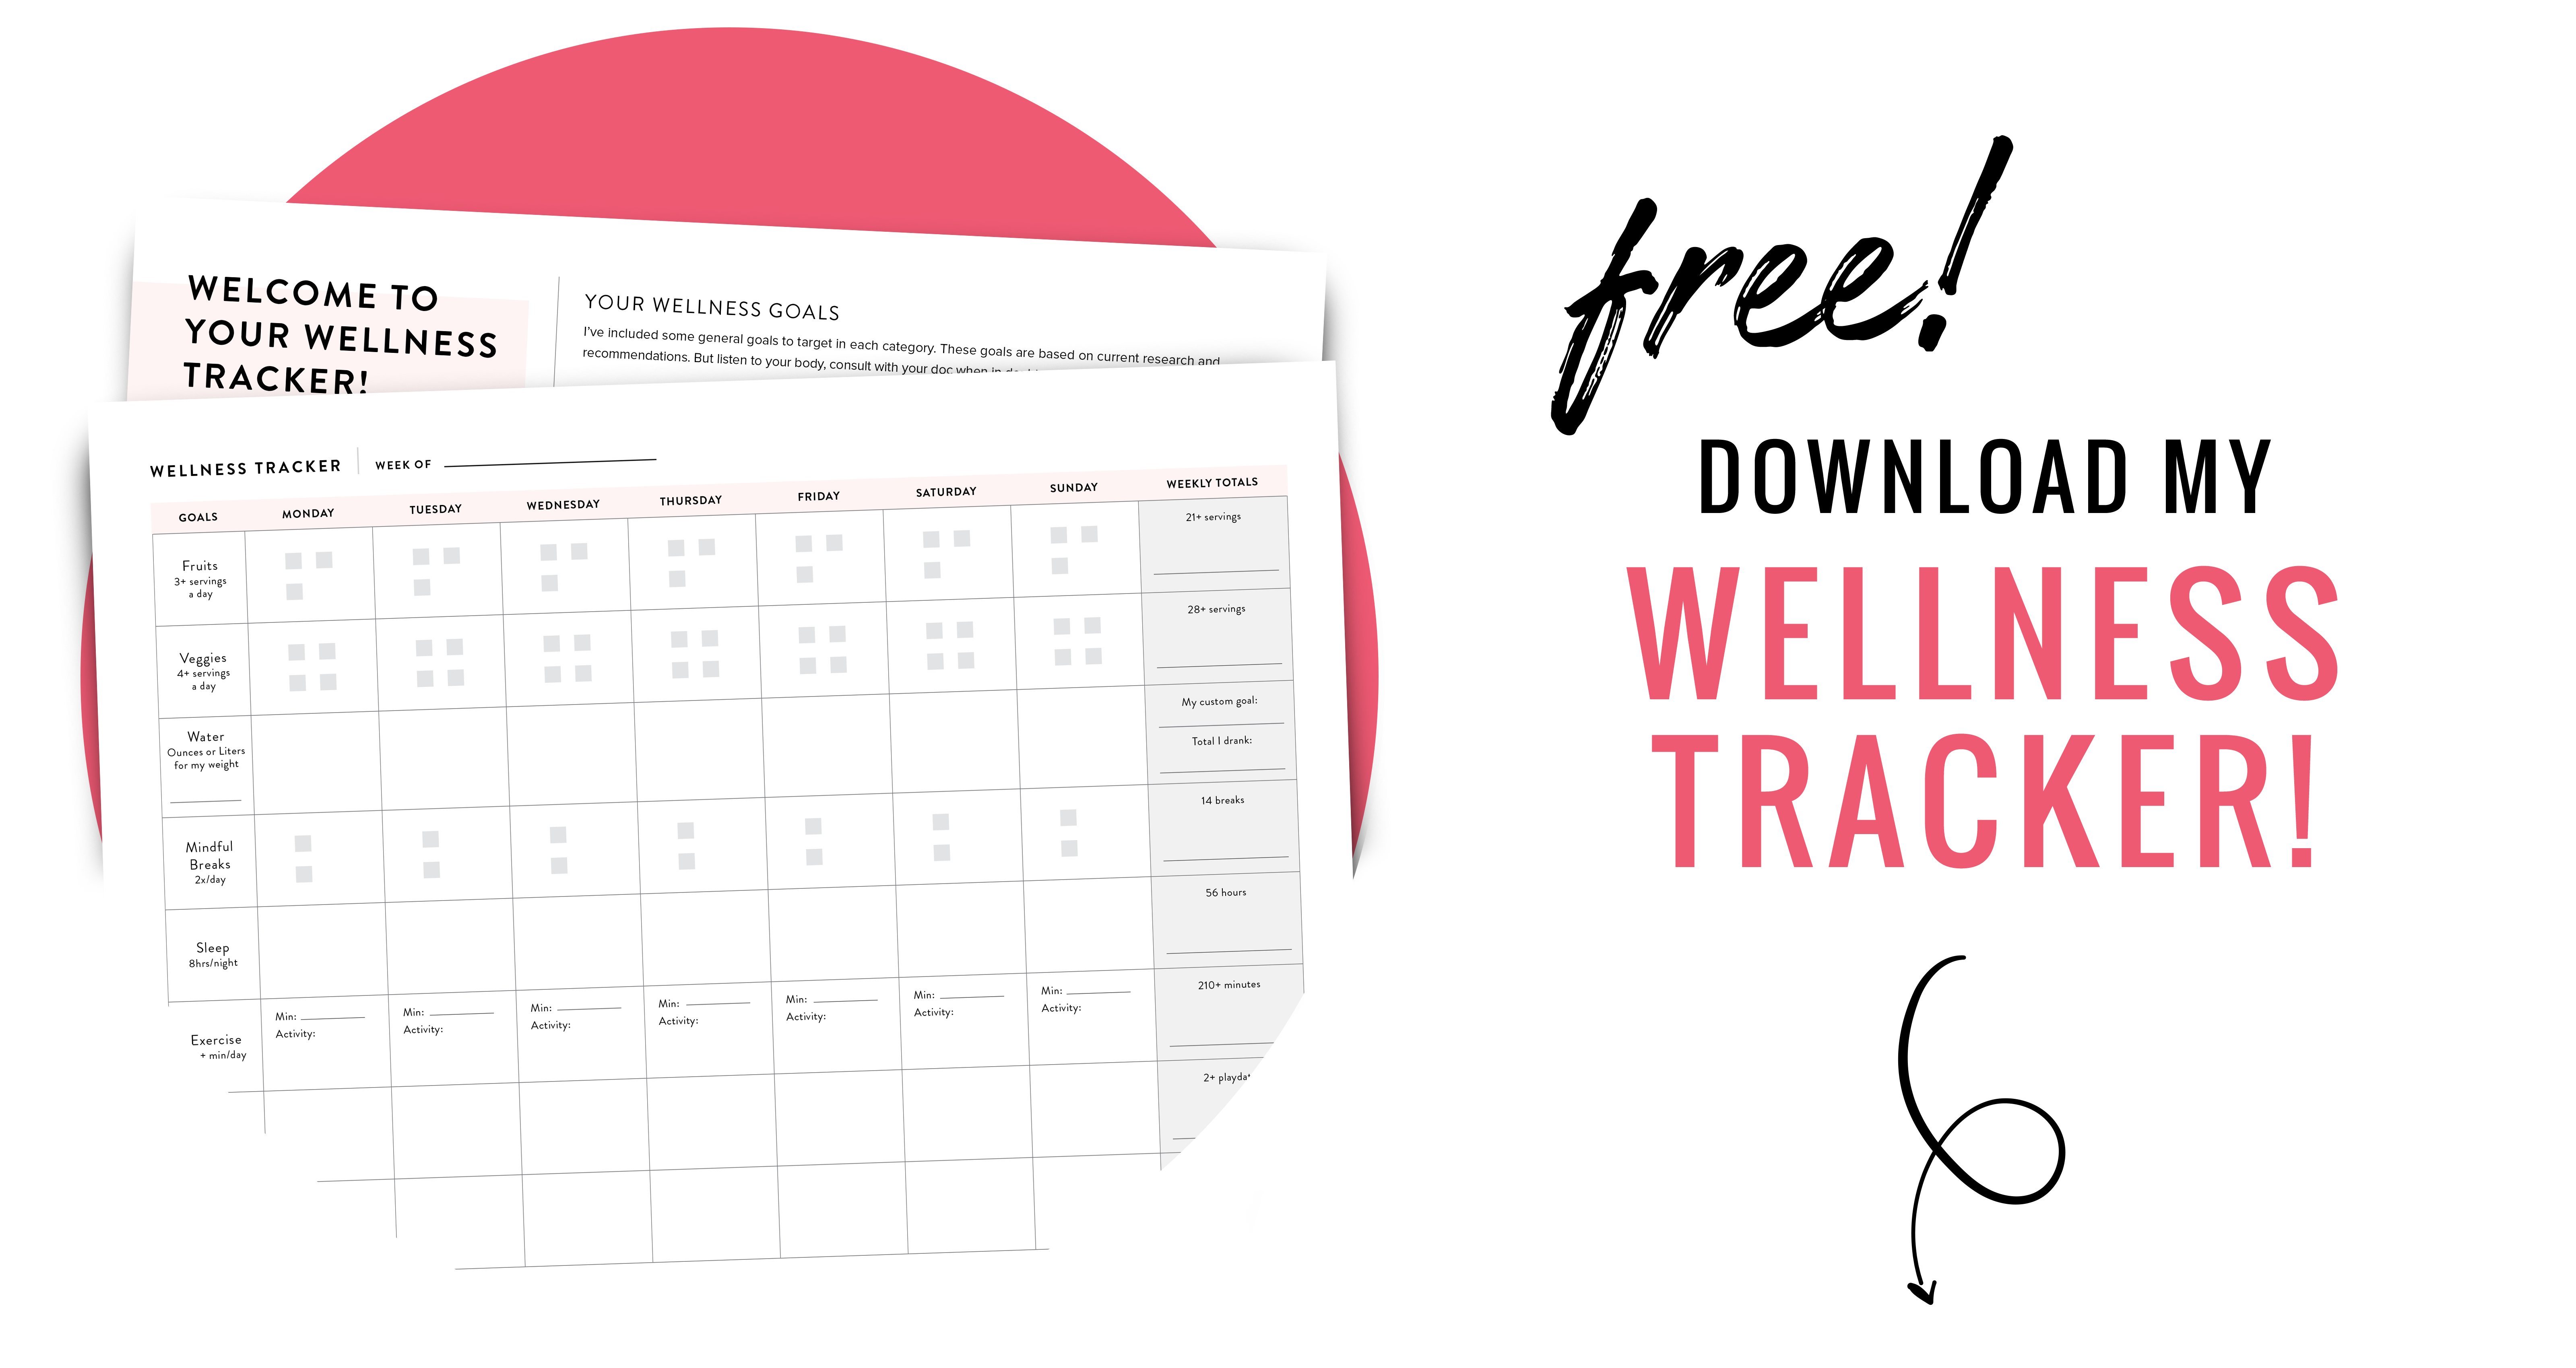 Download your free Wellness Tracker here!